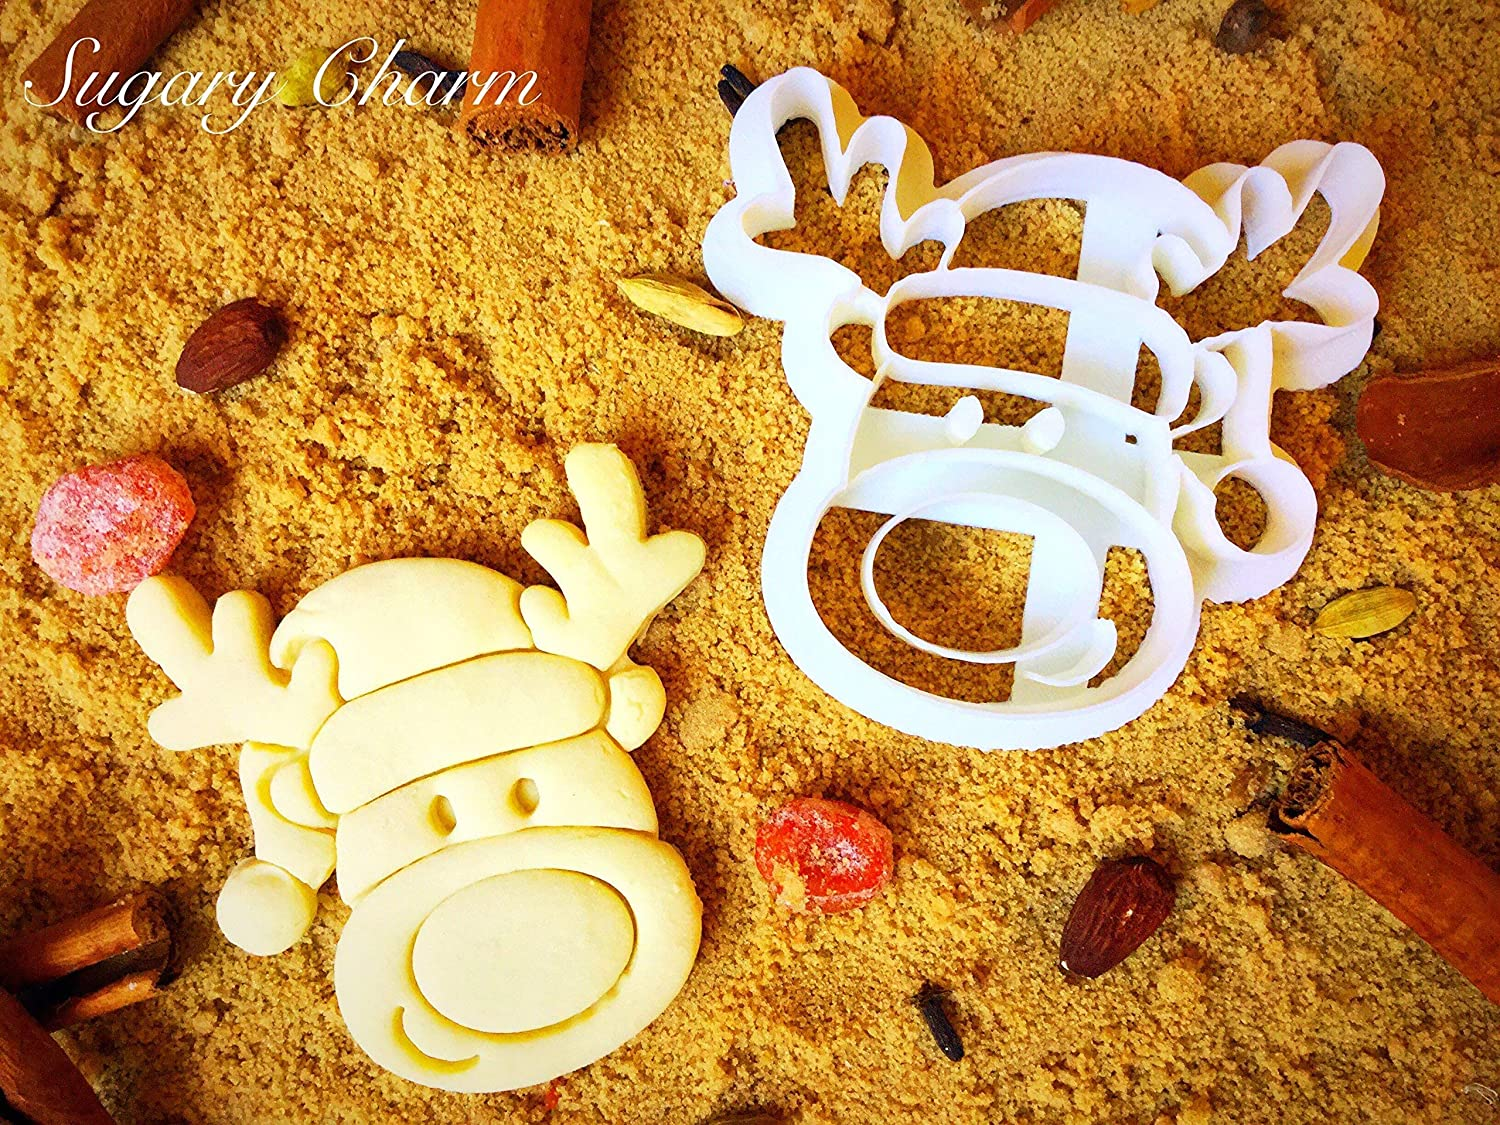 Reindeer Cookie Cutter - Unique Shaped Christmas Mini Present Cookies - 3D Detailed Xmas Shapes - Tiny Leaping Reindeer Face Cutters - Small Eco Friendly Plastic Mold by Sugary Charm